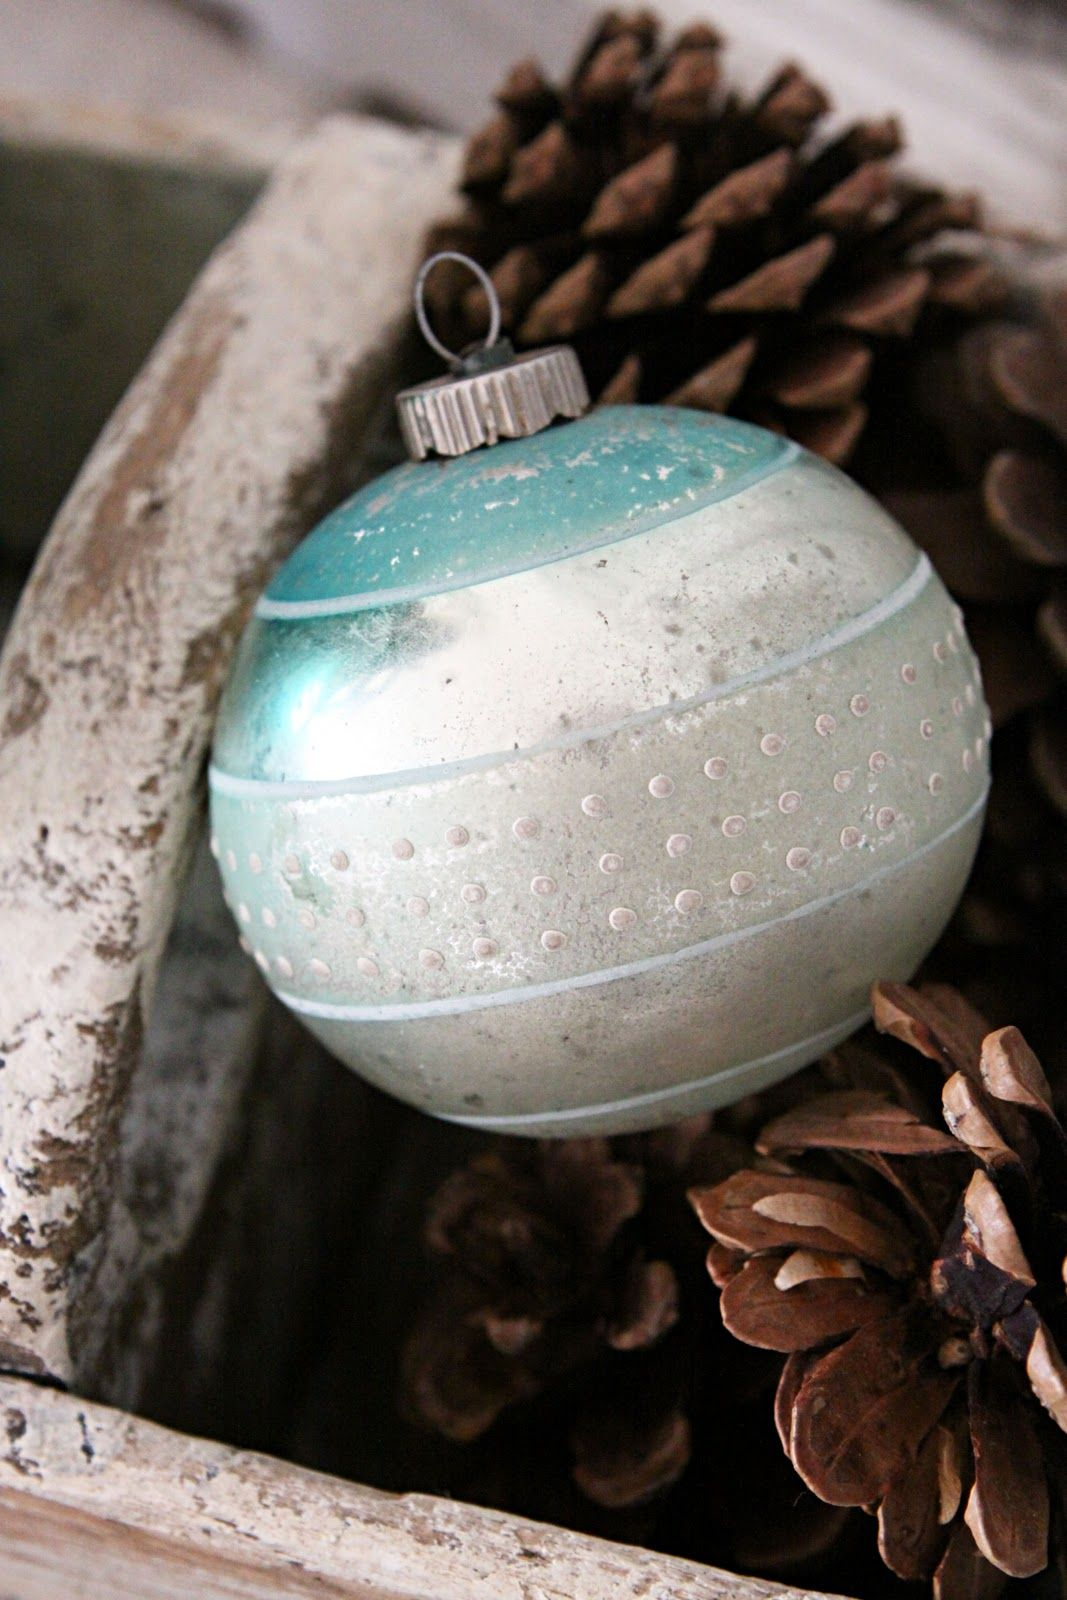 Love the vintage ornament and the simplicity of the arrangement!